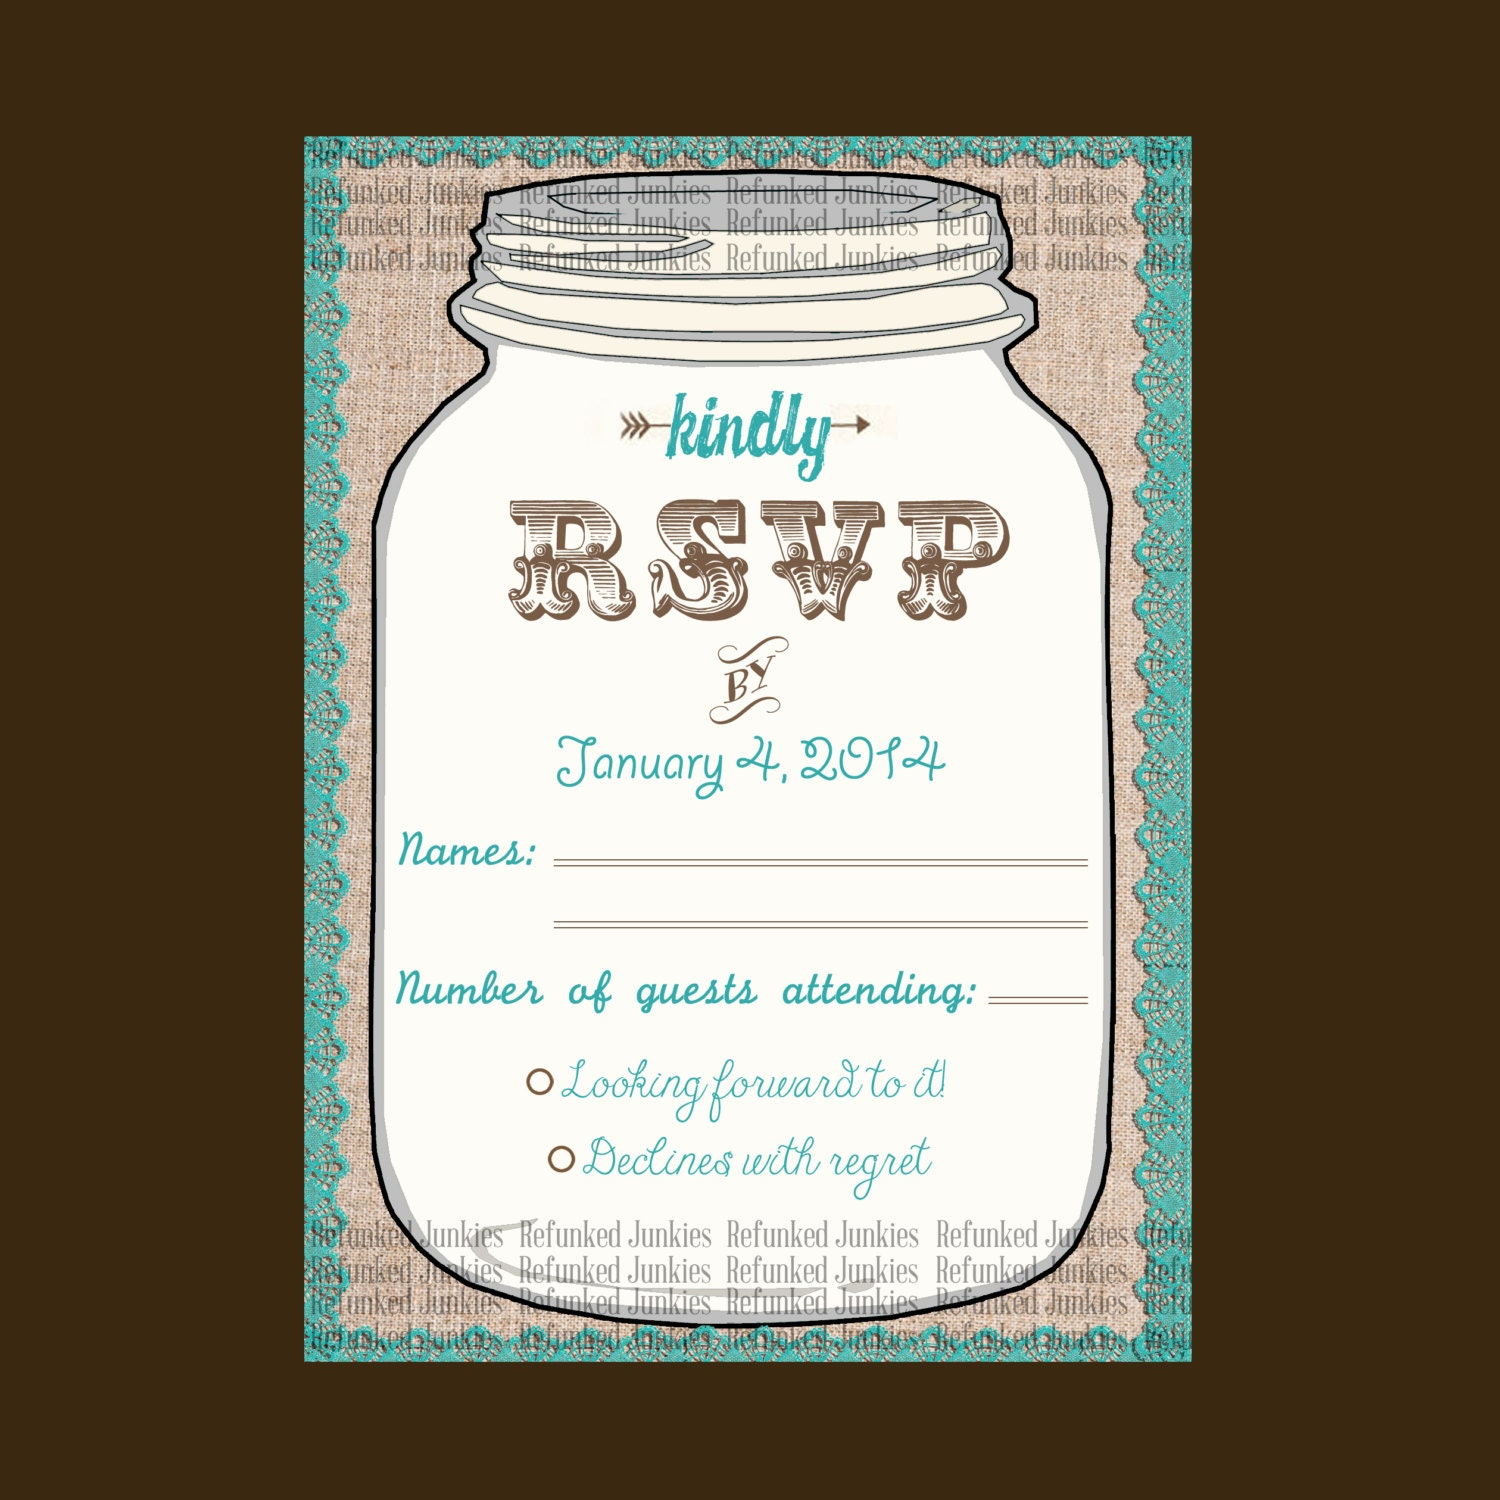 Template Mason Jar RSVP Cardtealrustic weddingburlap lace – Free Wedding Rsvp Card Templates